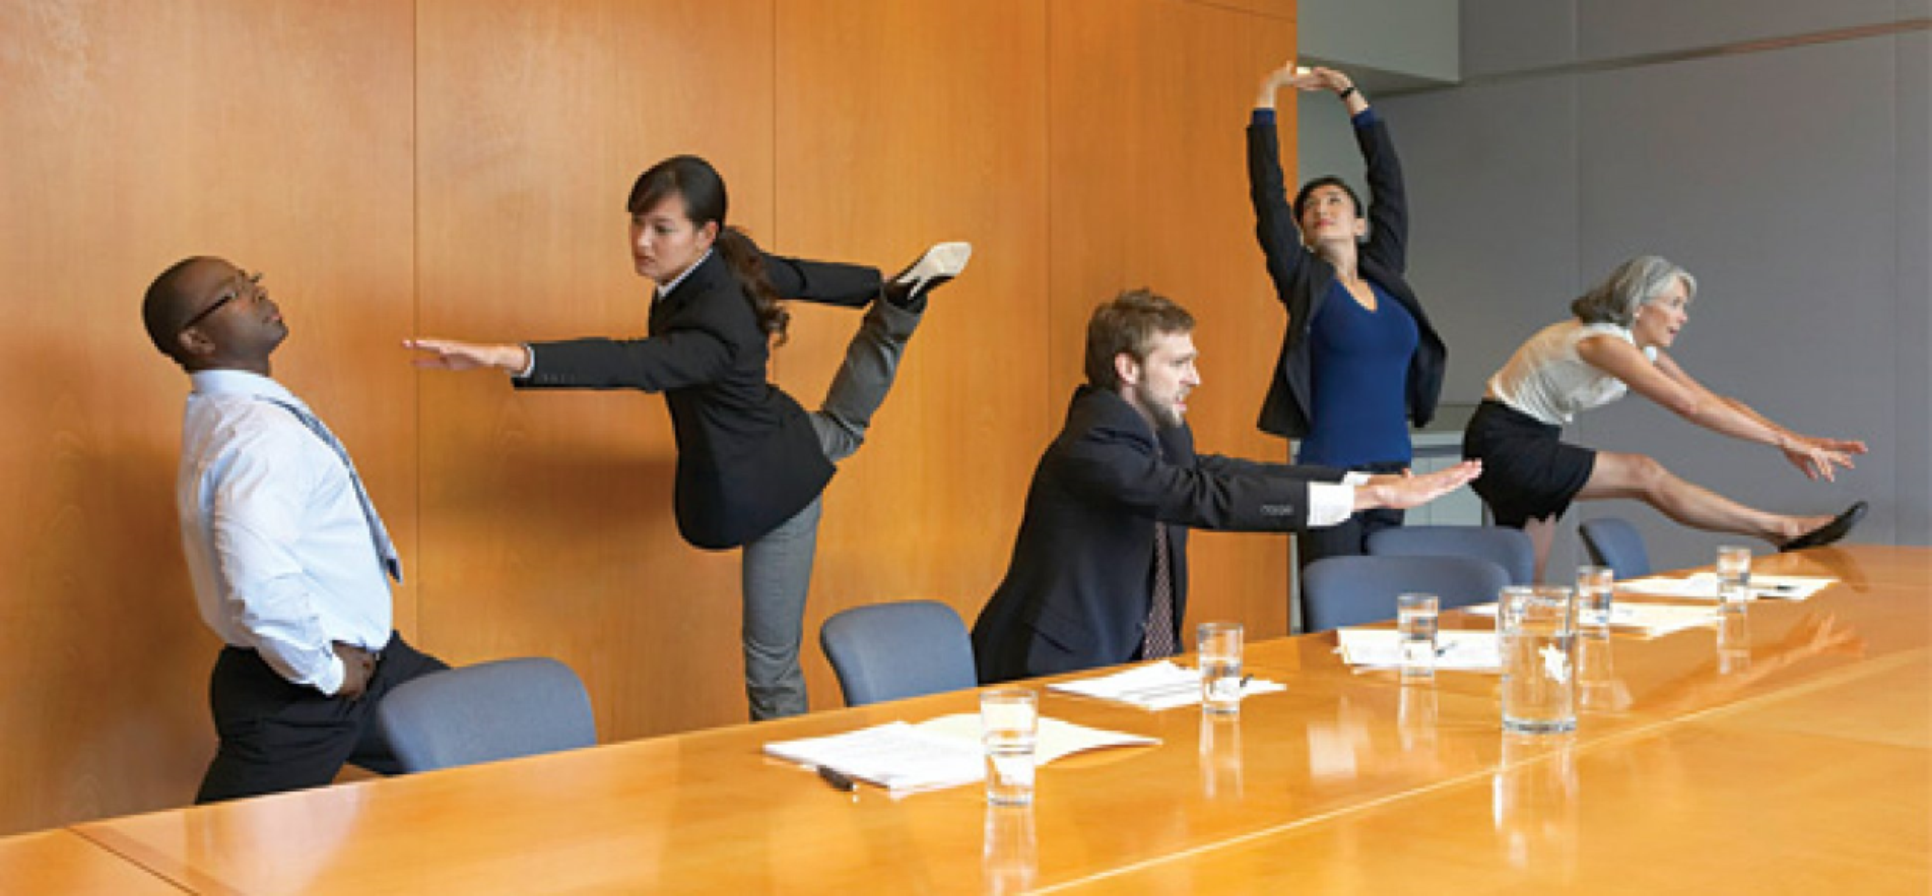 colleagues are doing yoga in the office